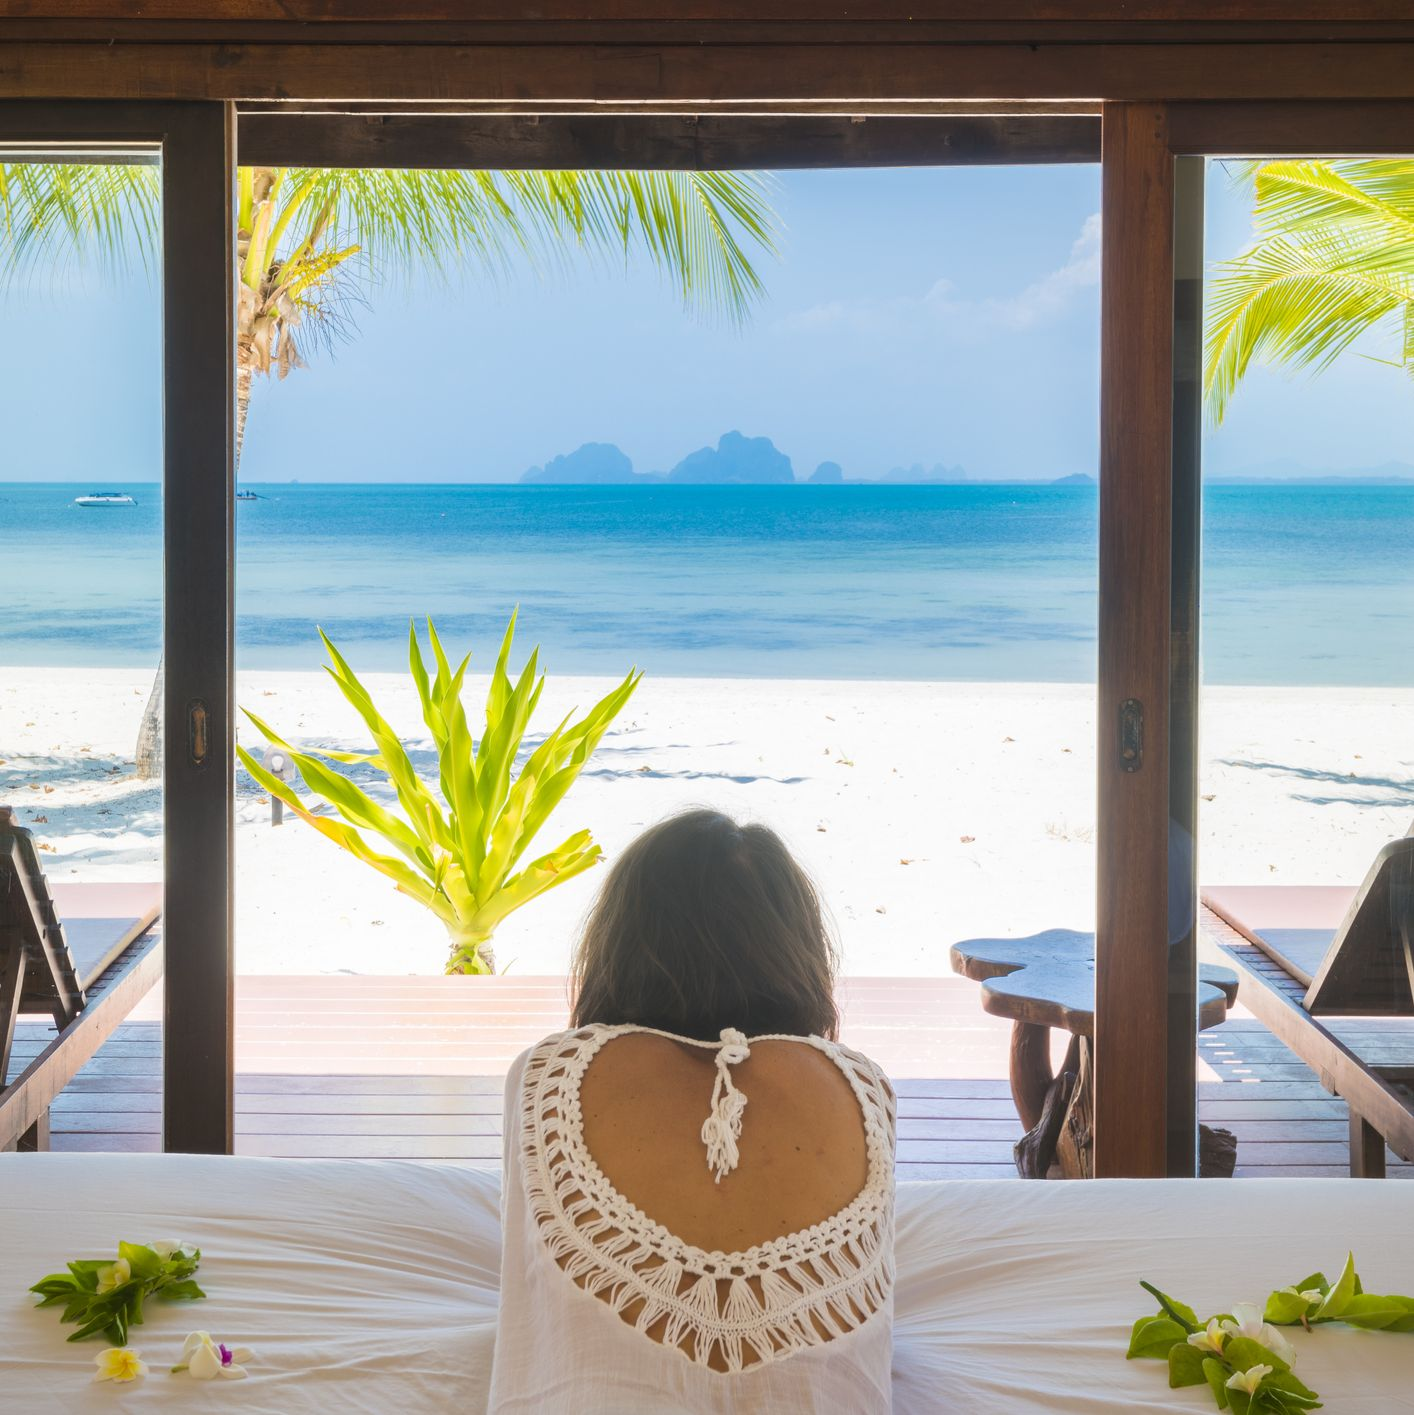 Beautiful woman looking away at the beach from a beachfront bungalow, Thailand.